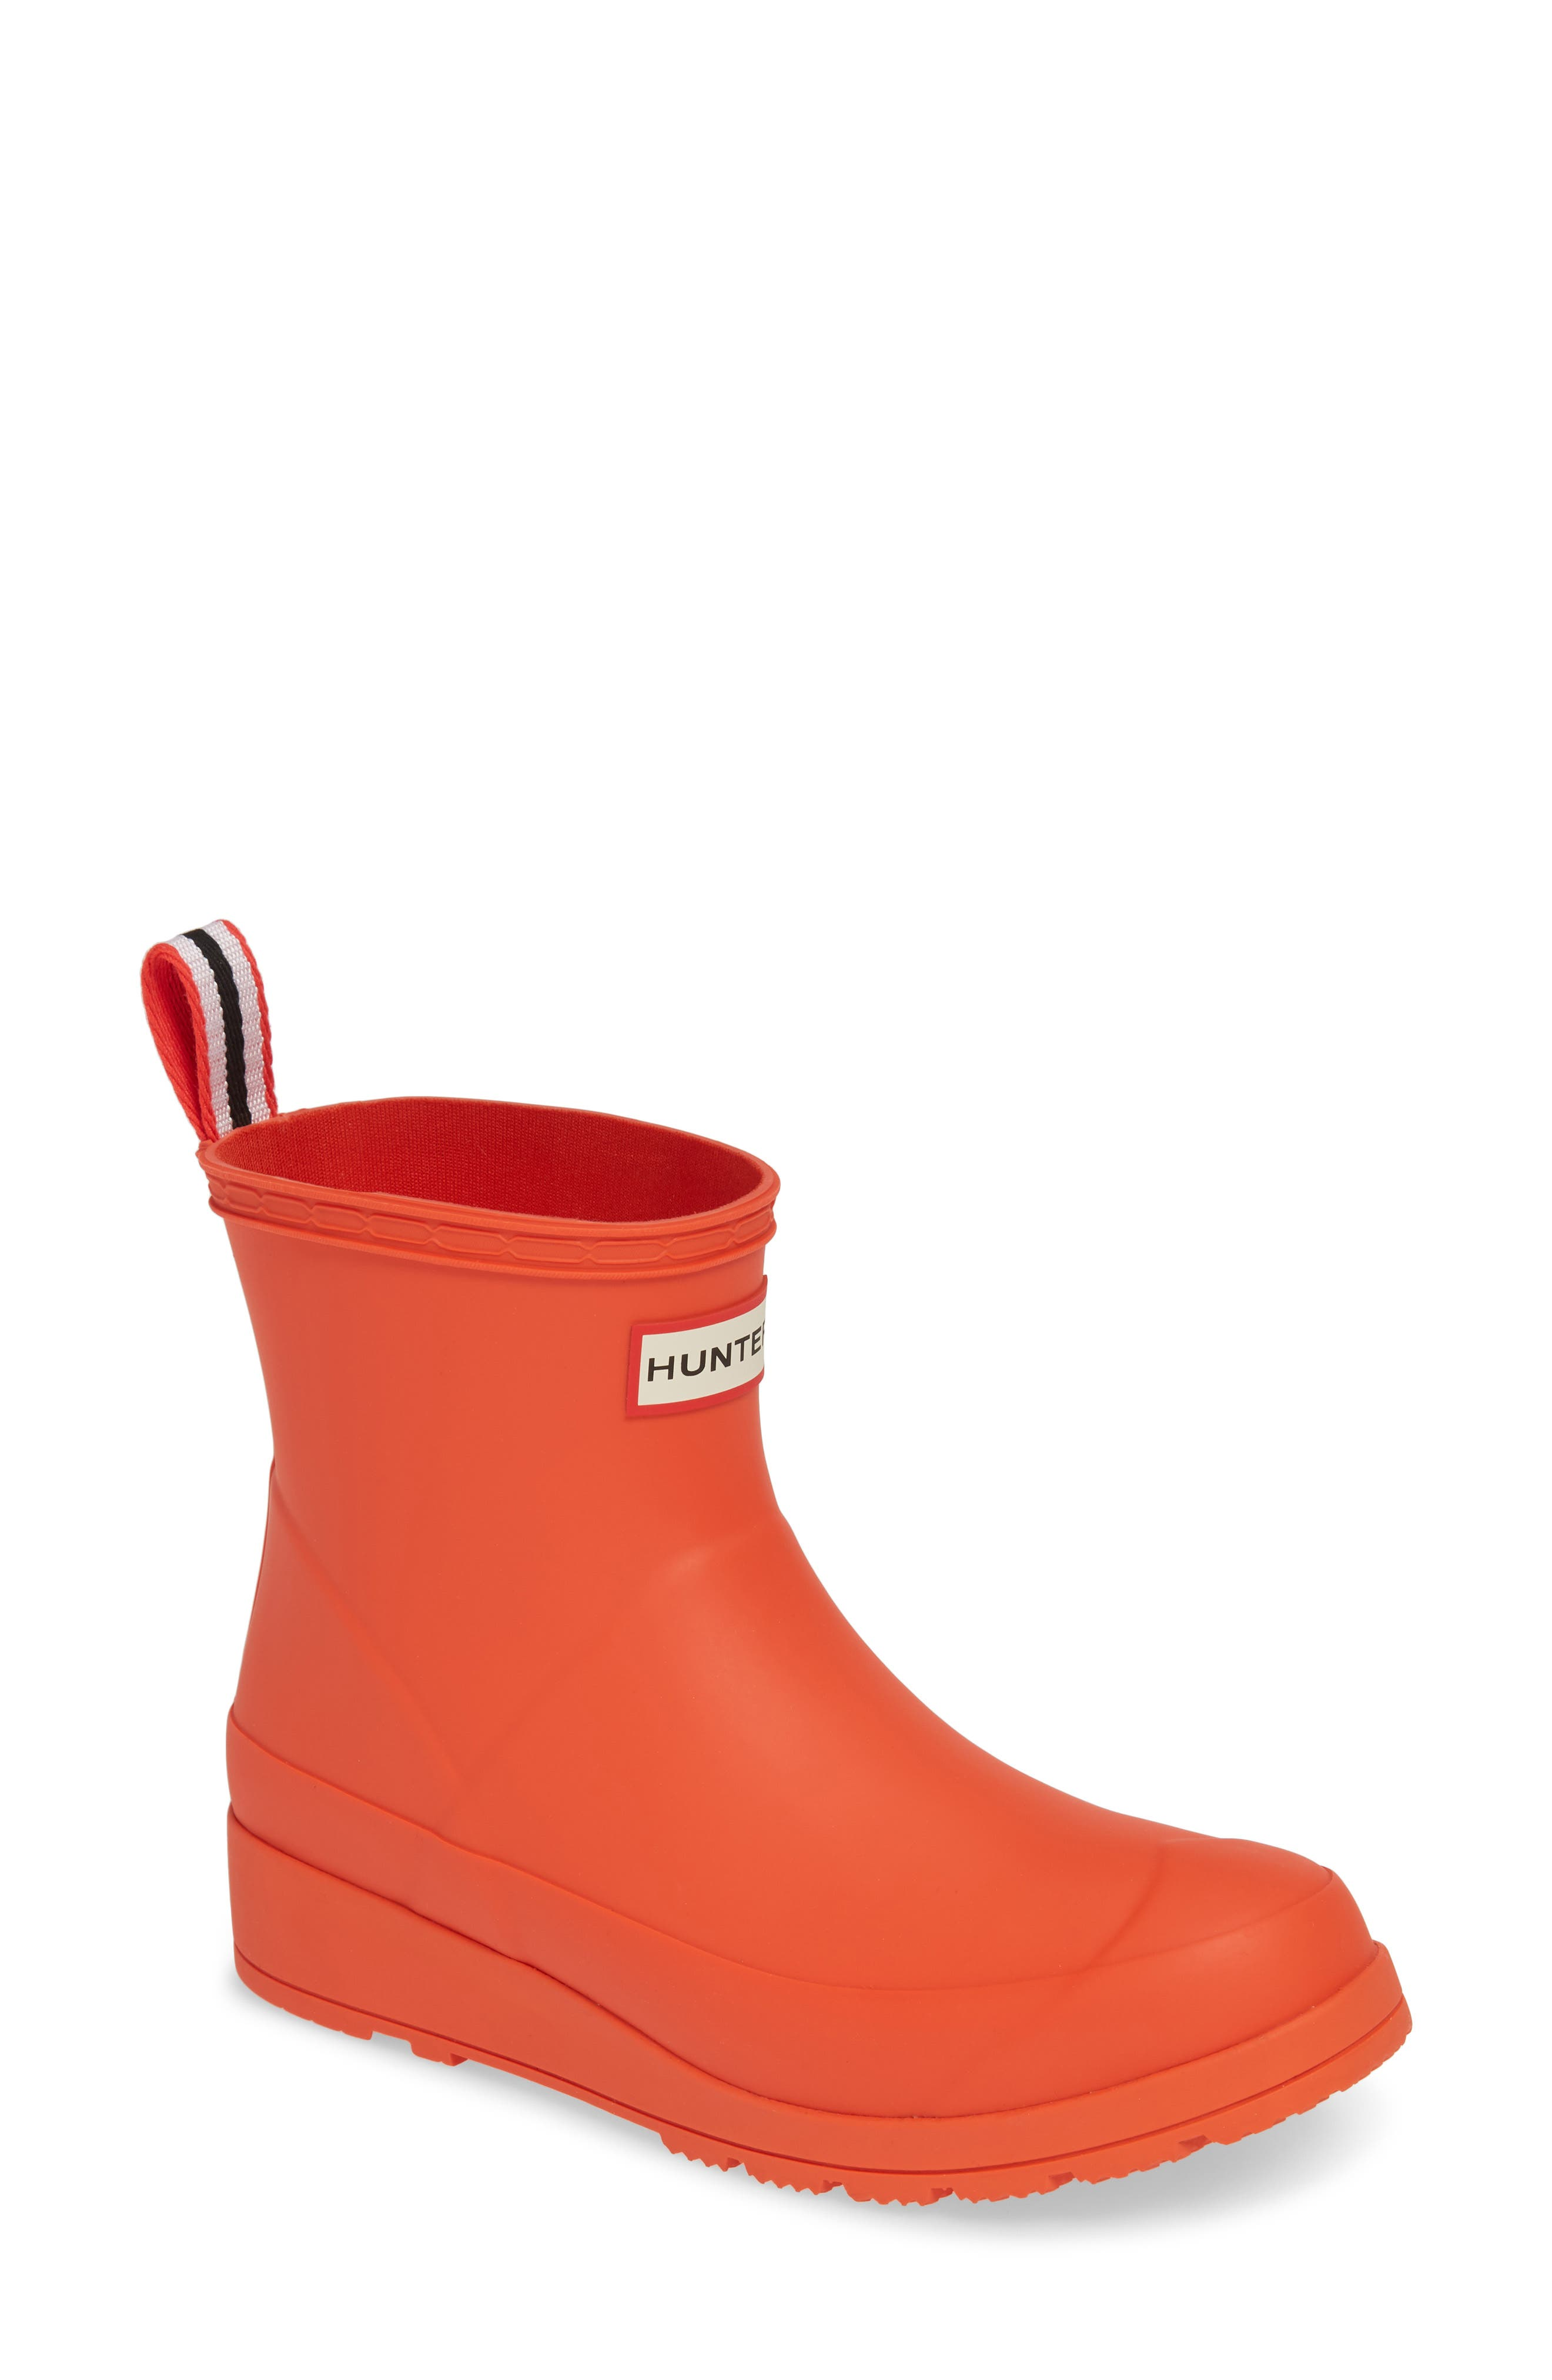 Original Play Waterproof Rain Bootie, Main, color, LIGHTHOUSE